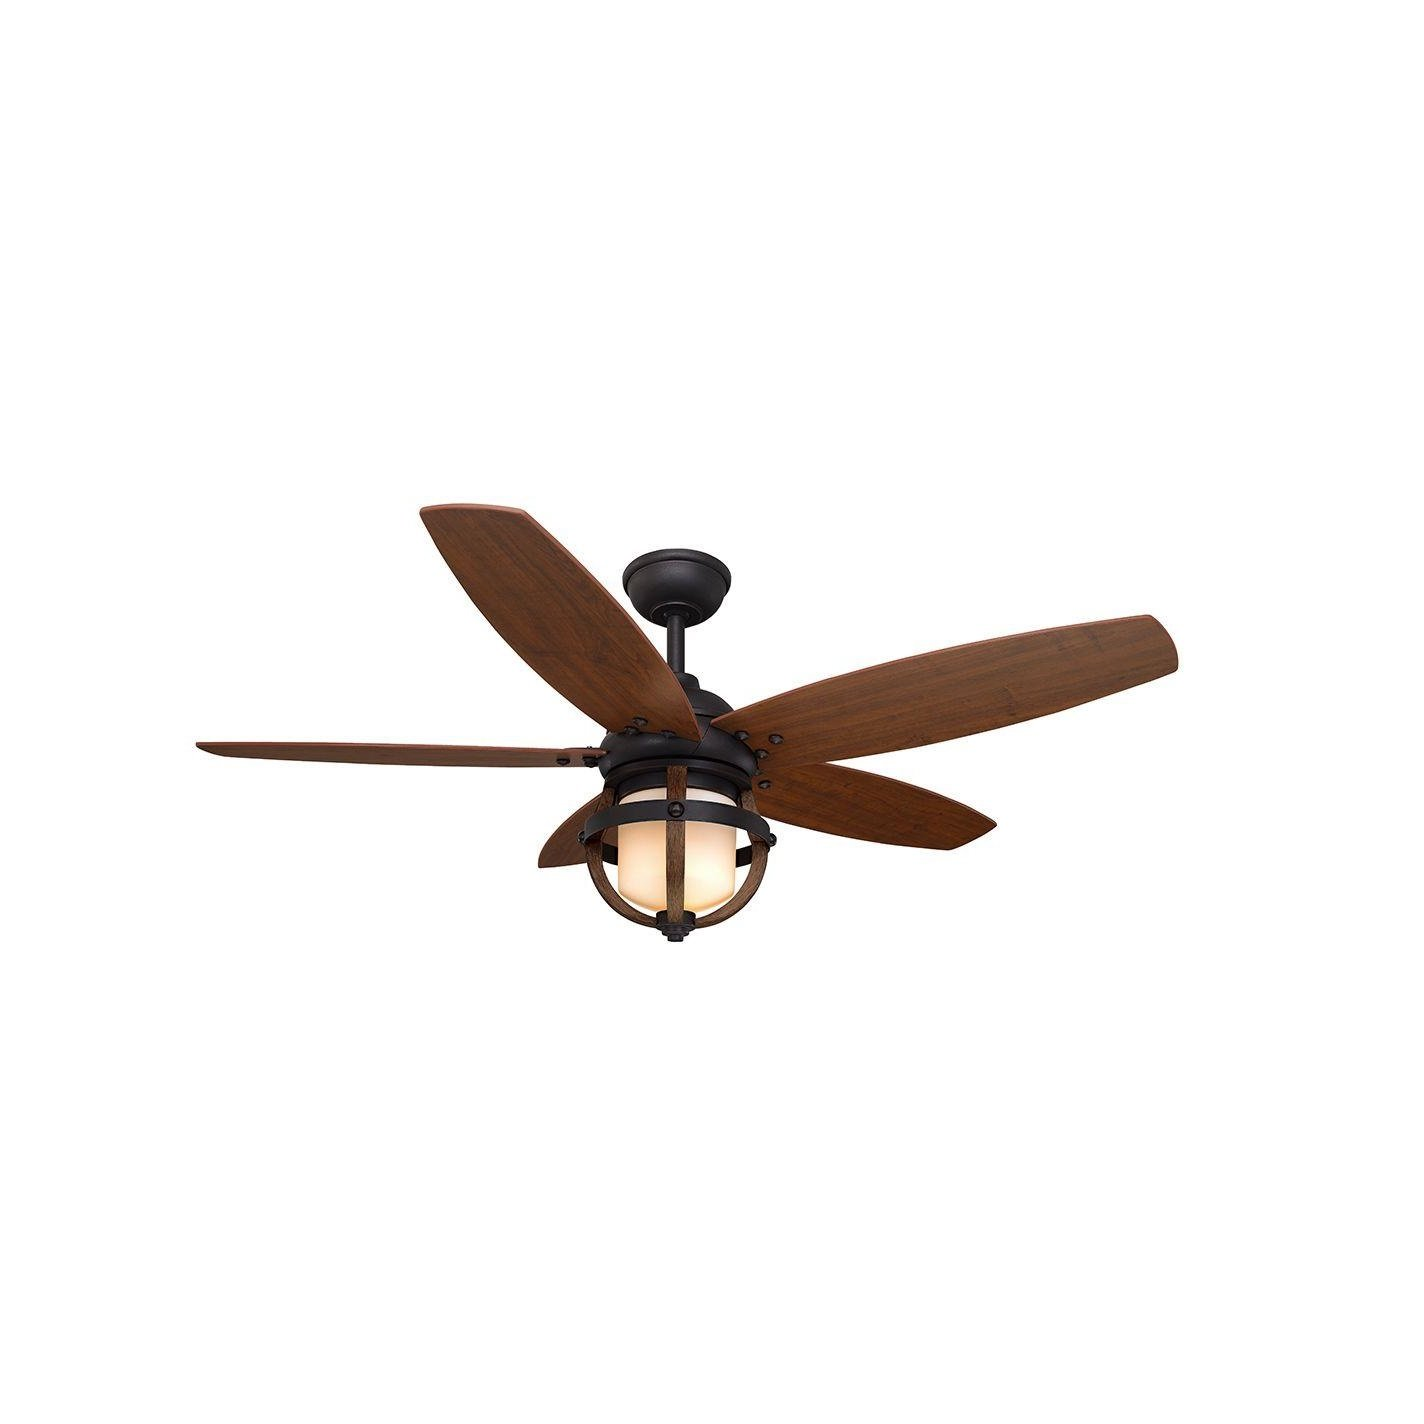 Home Decorators Collection Noah 52 in. Forged Iron Ceiling Fan